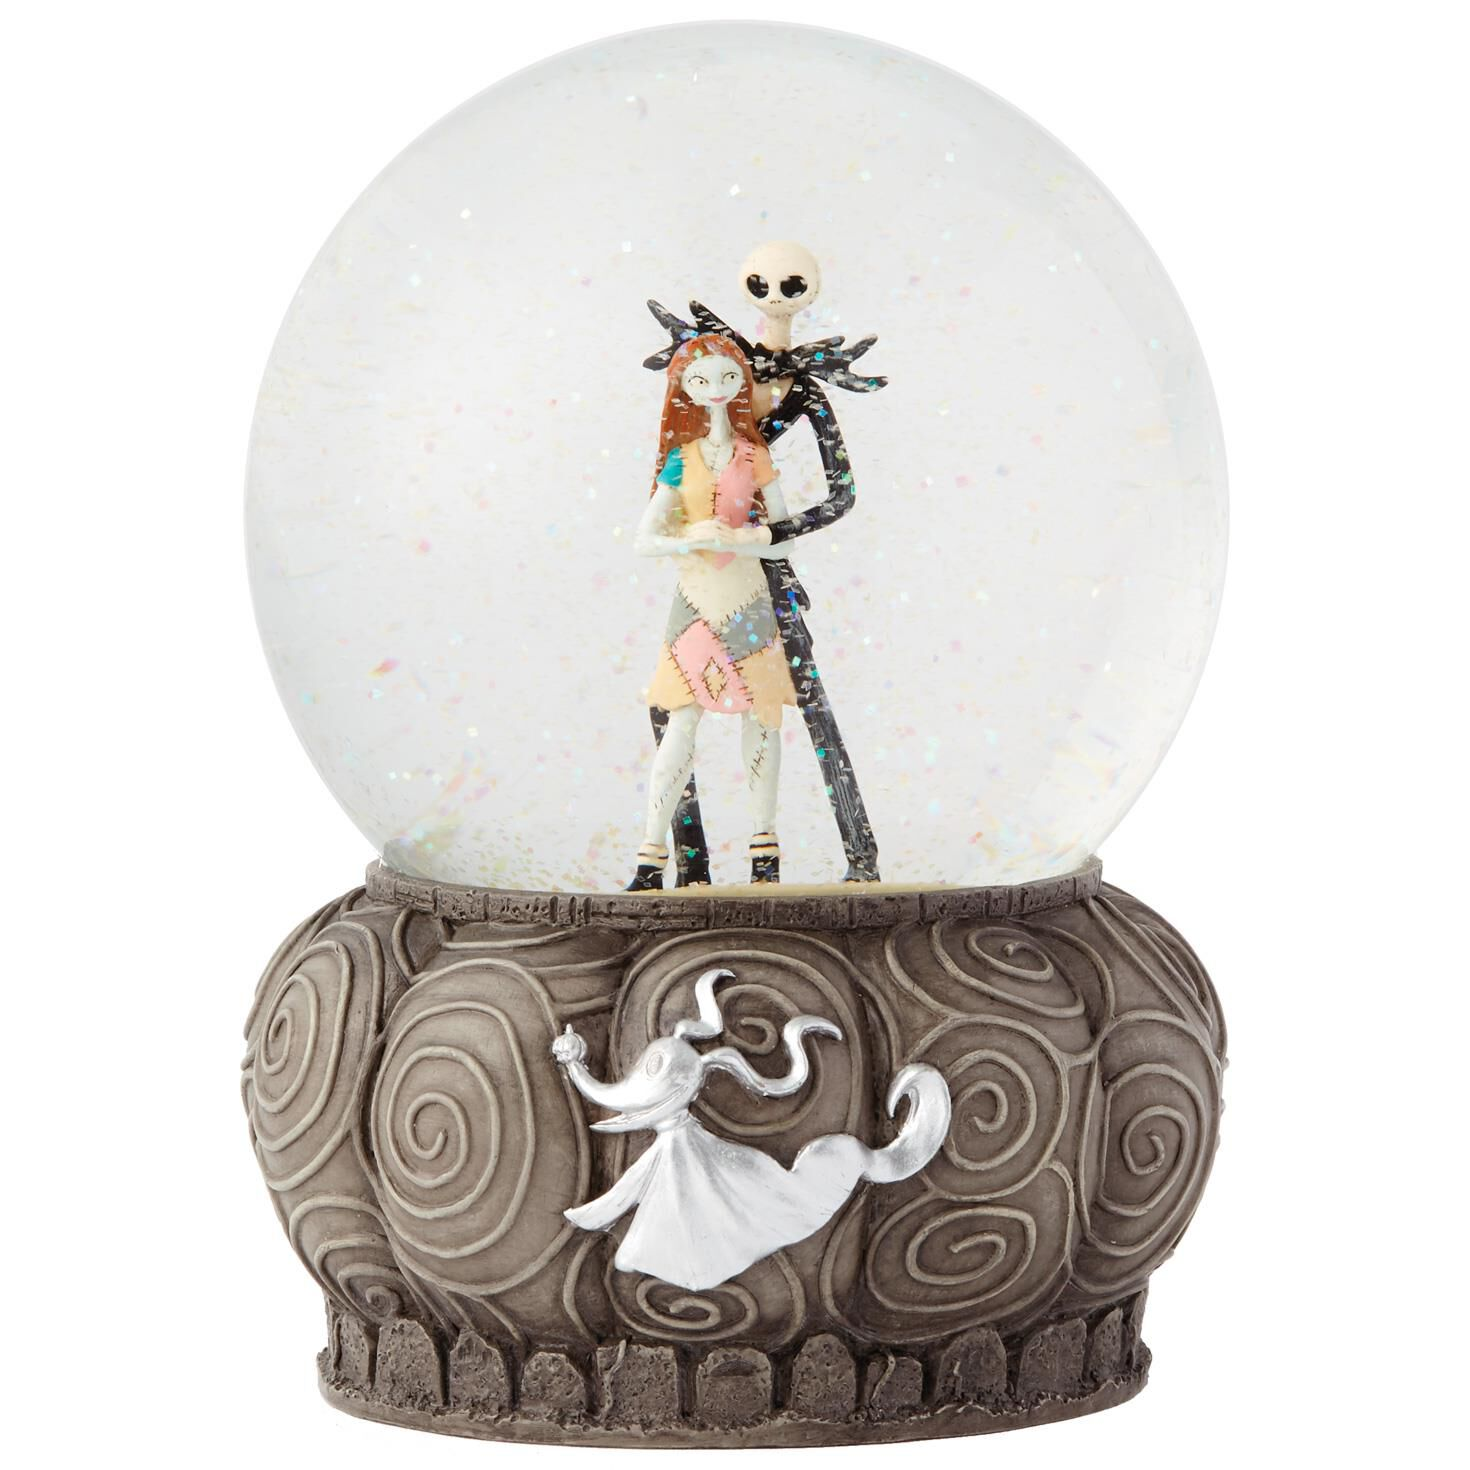 disney showcase the nightmare before christmas snow globe snow globes water globes hallmark